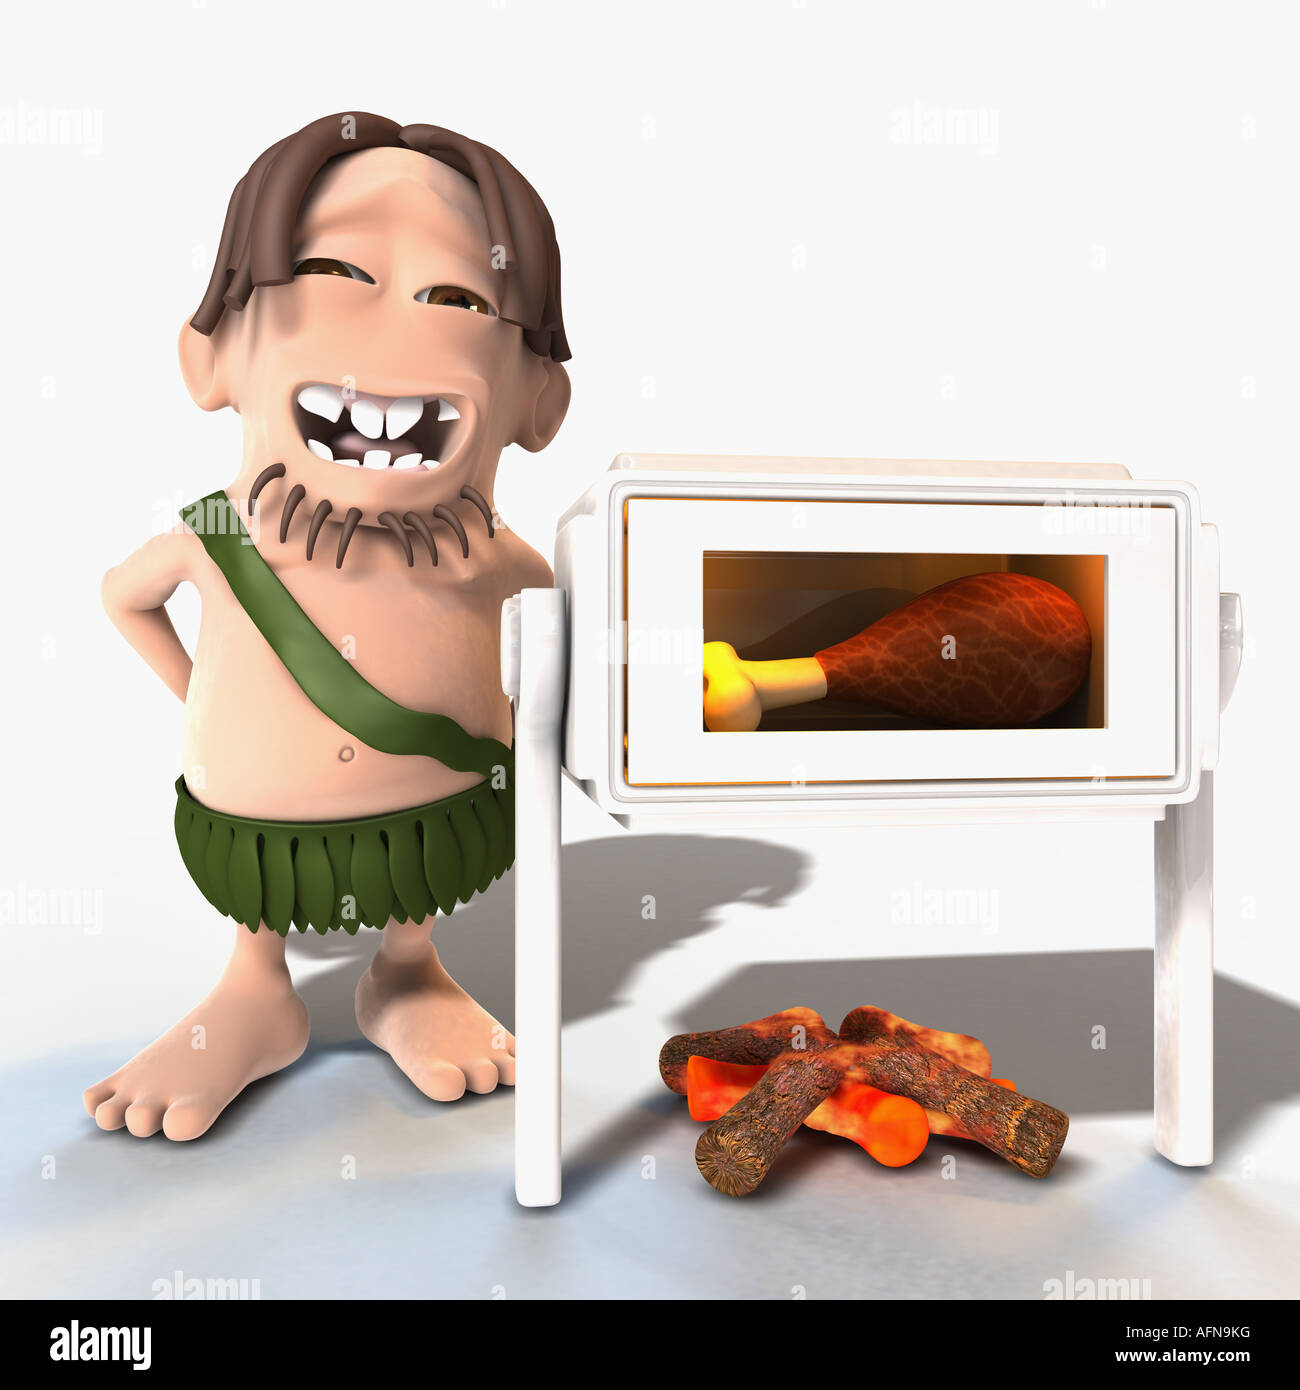 Man cooking a drumstick in microwave with a fire under it - Stock Image